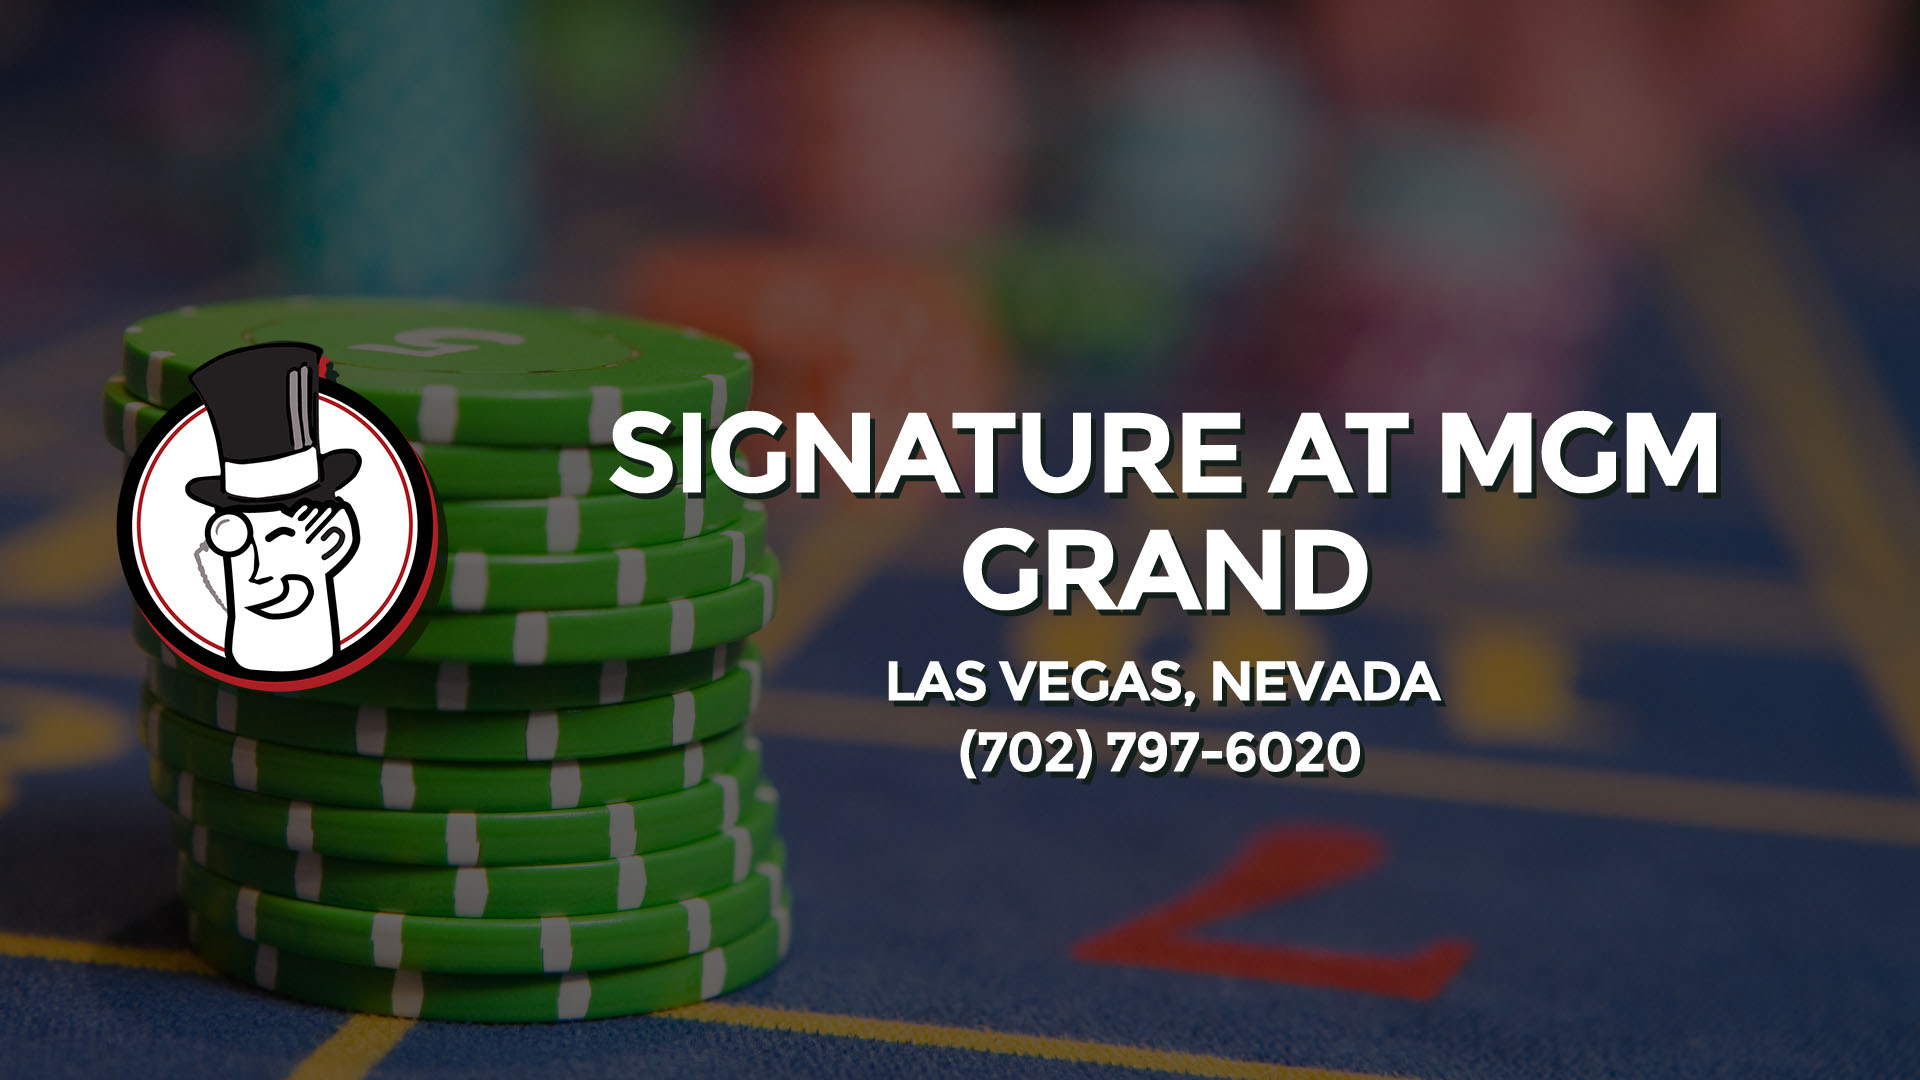 SIGNATURE AT MGM GRAND LAS VEGAS NV